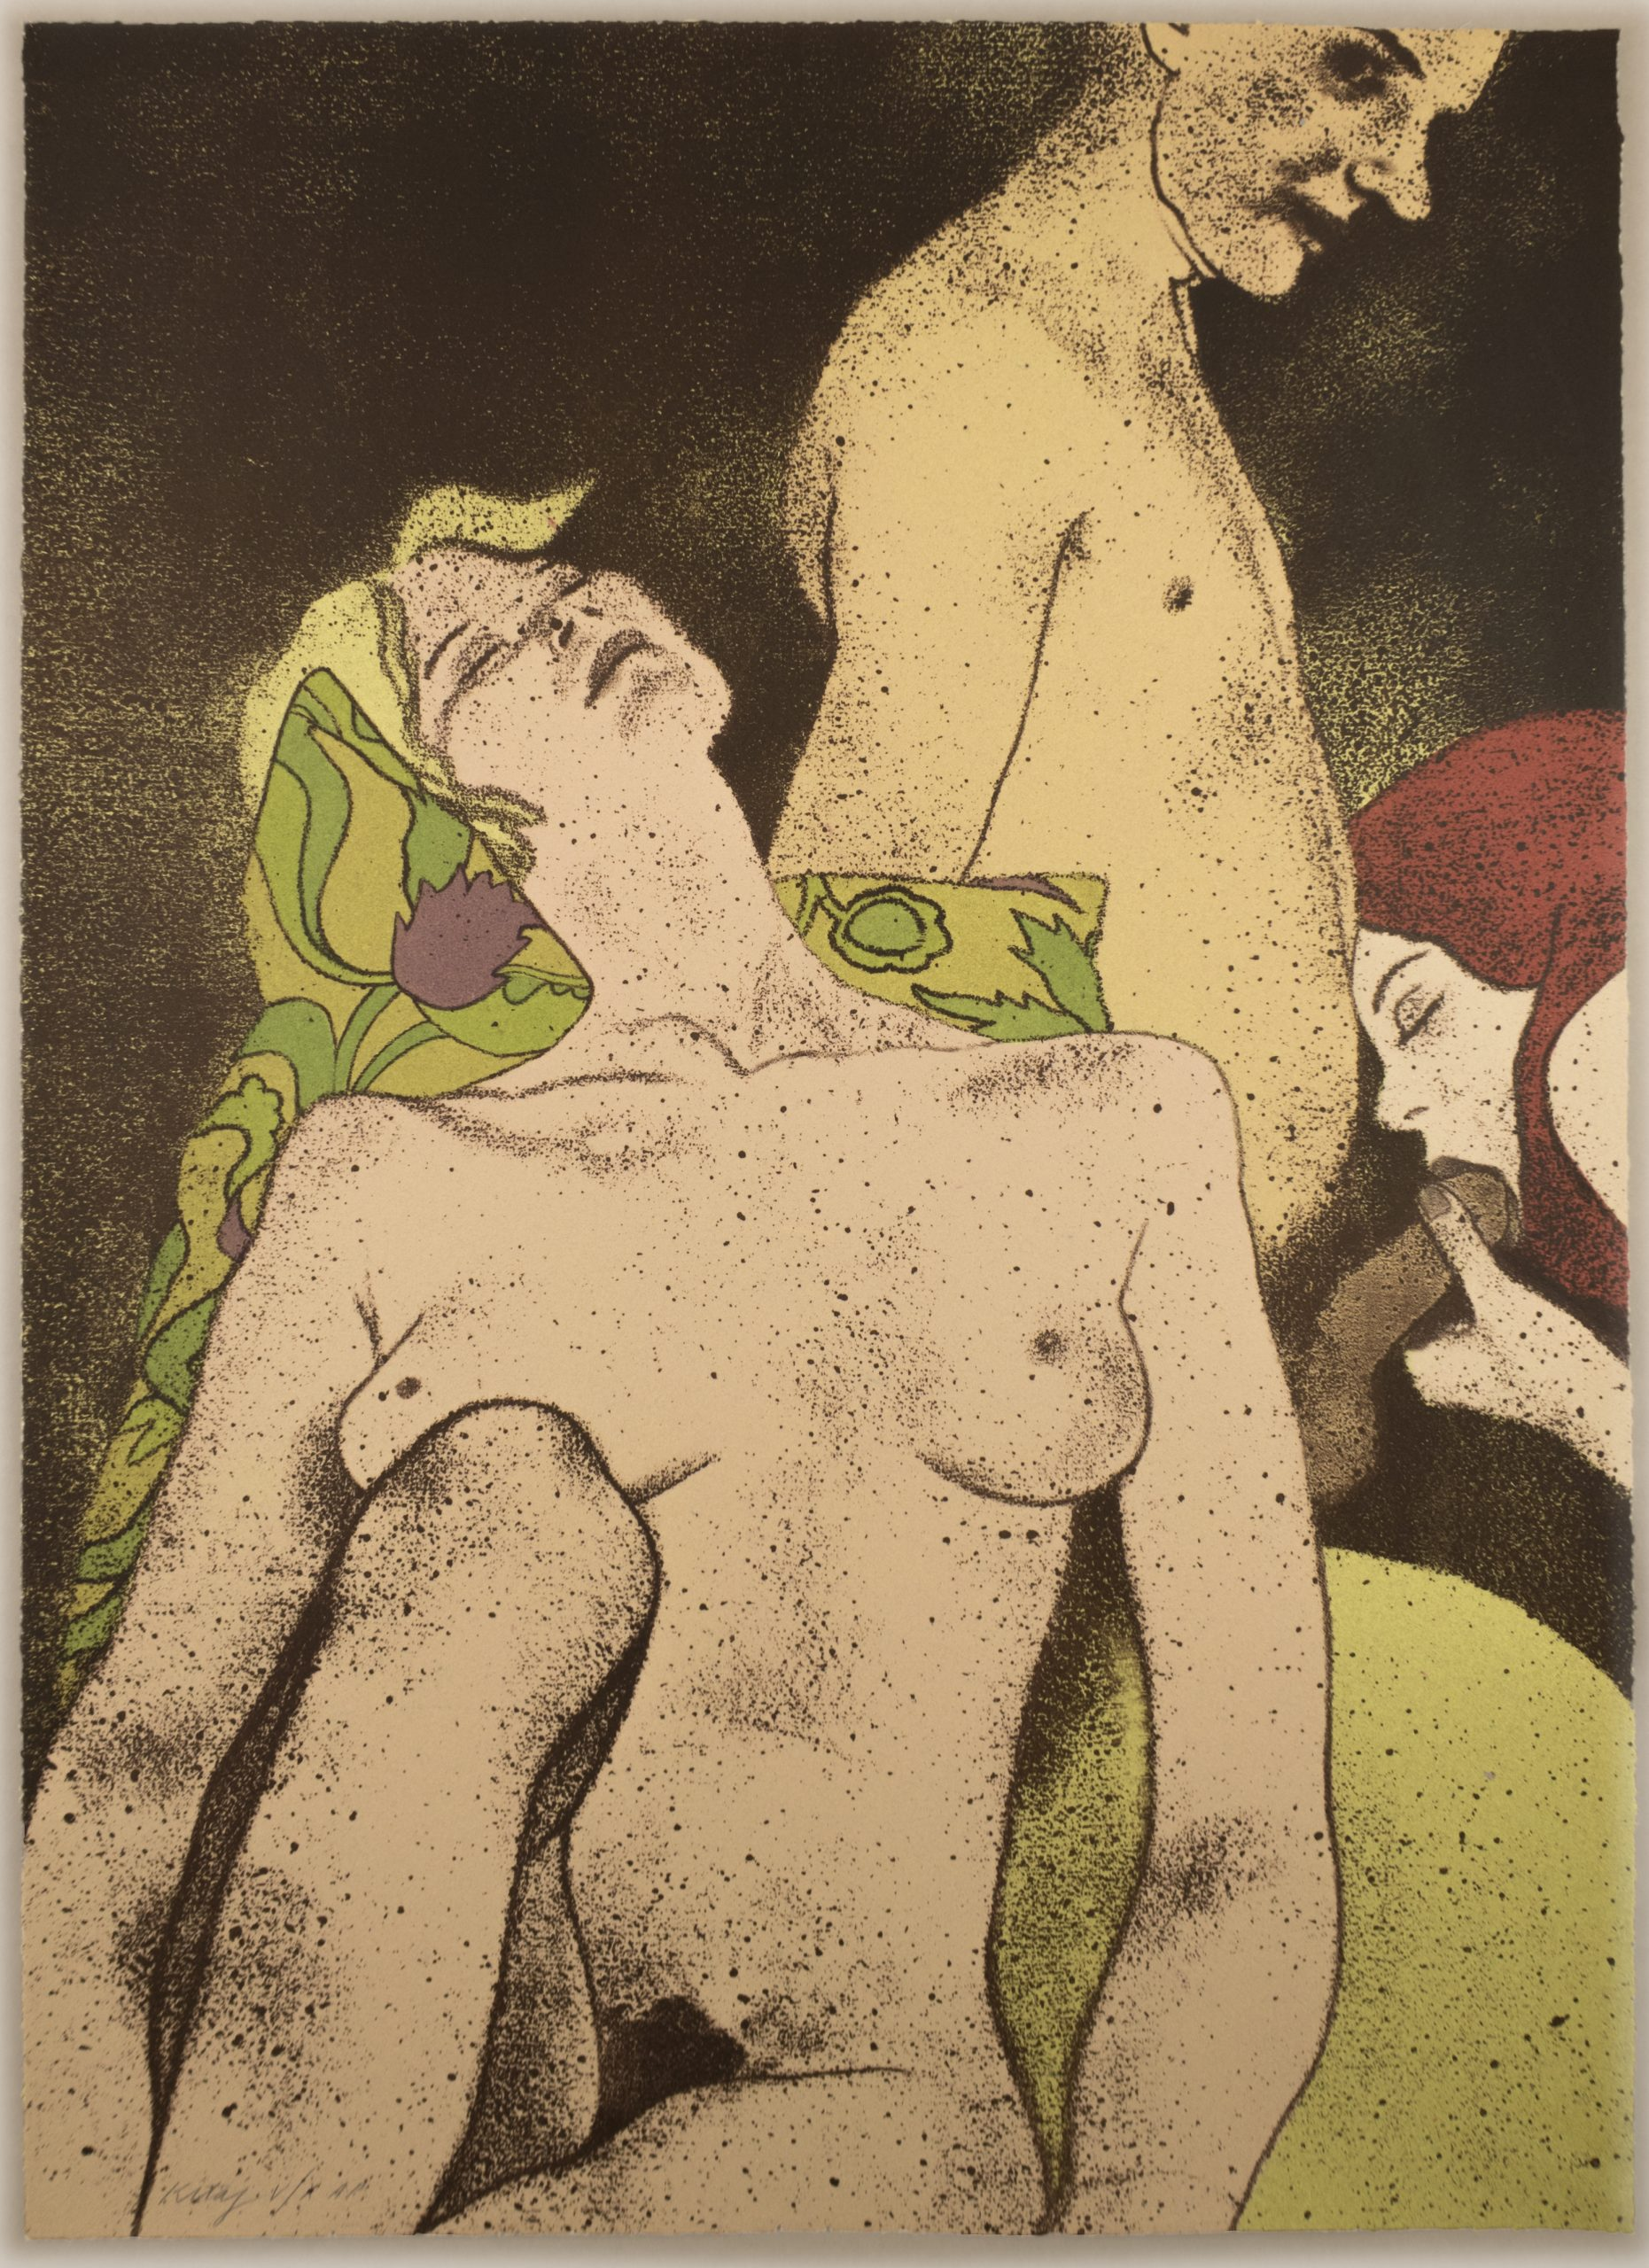 A Rash Act by R.B. Kitaj